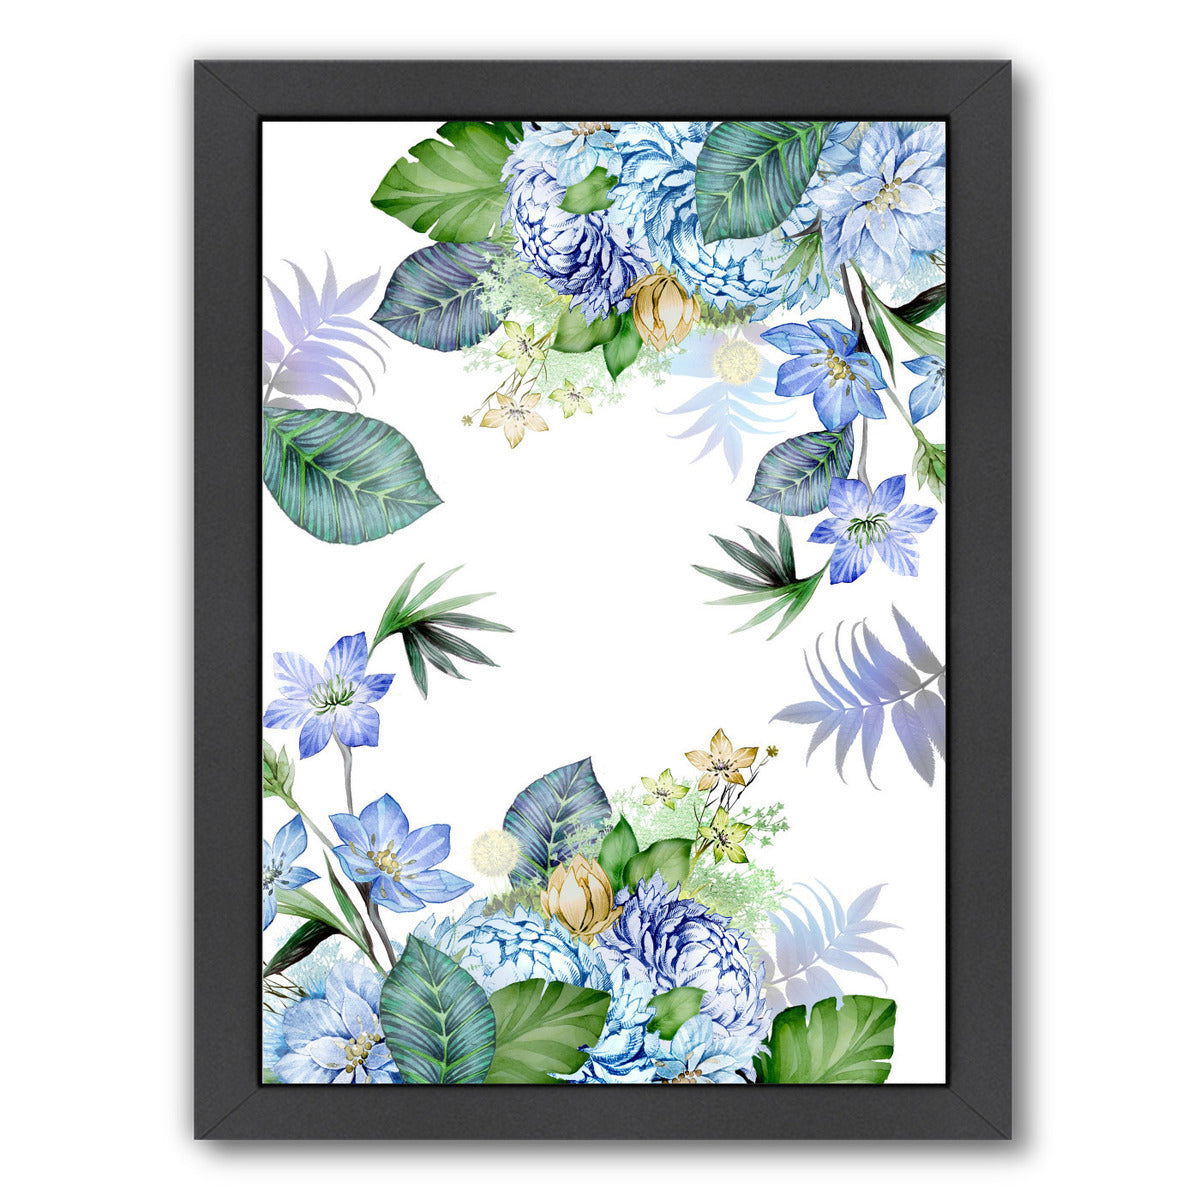 Yell Blue Border By Victoria Nelson - Black Framed Print - Wall Art - Americanflat